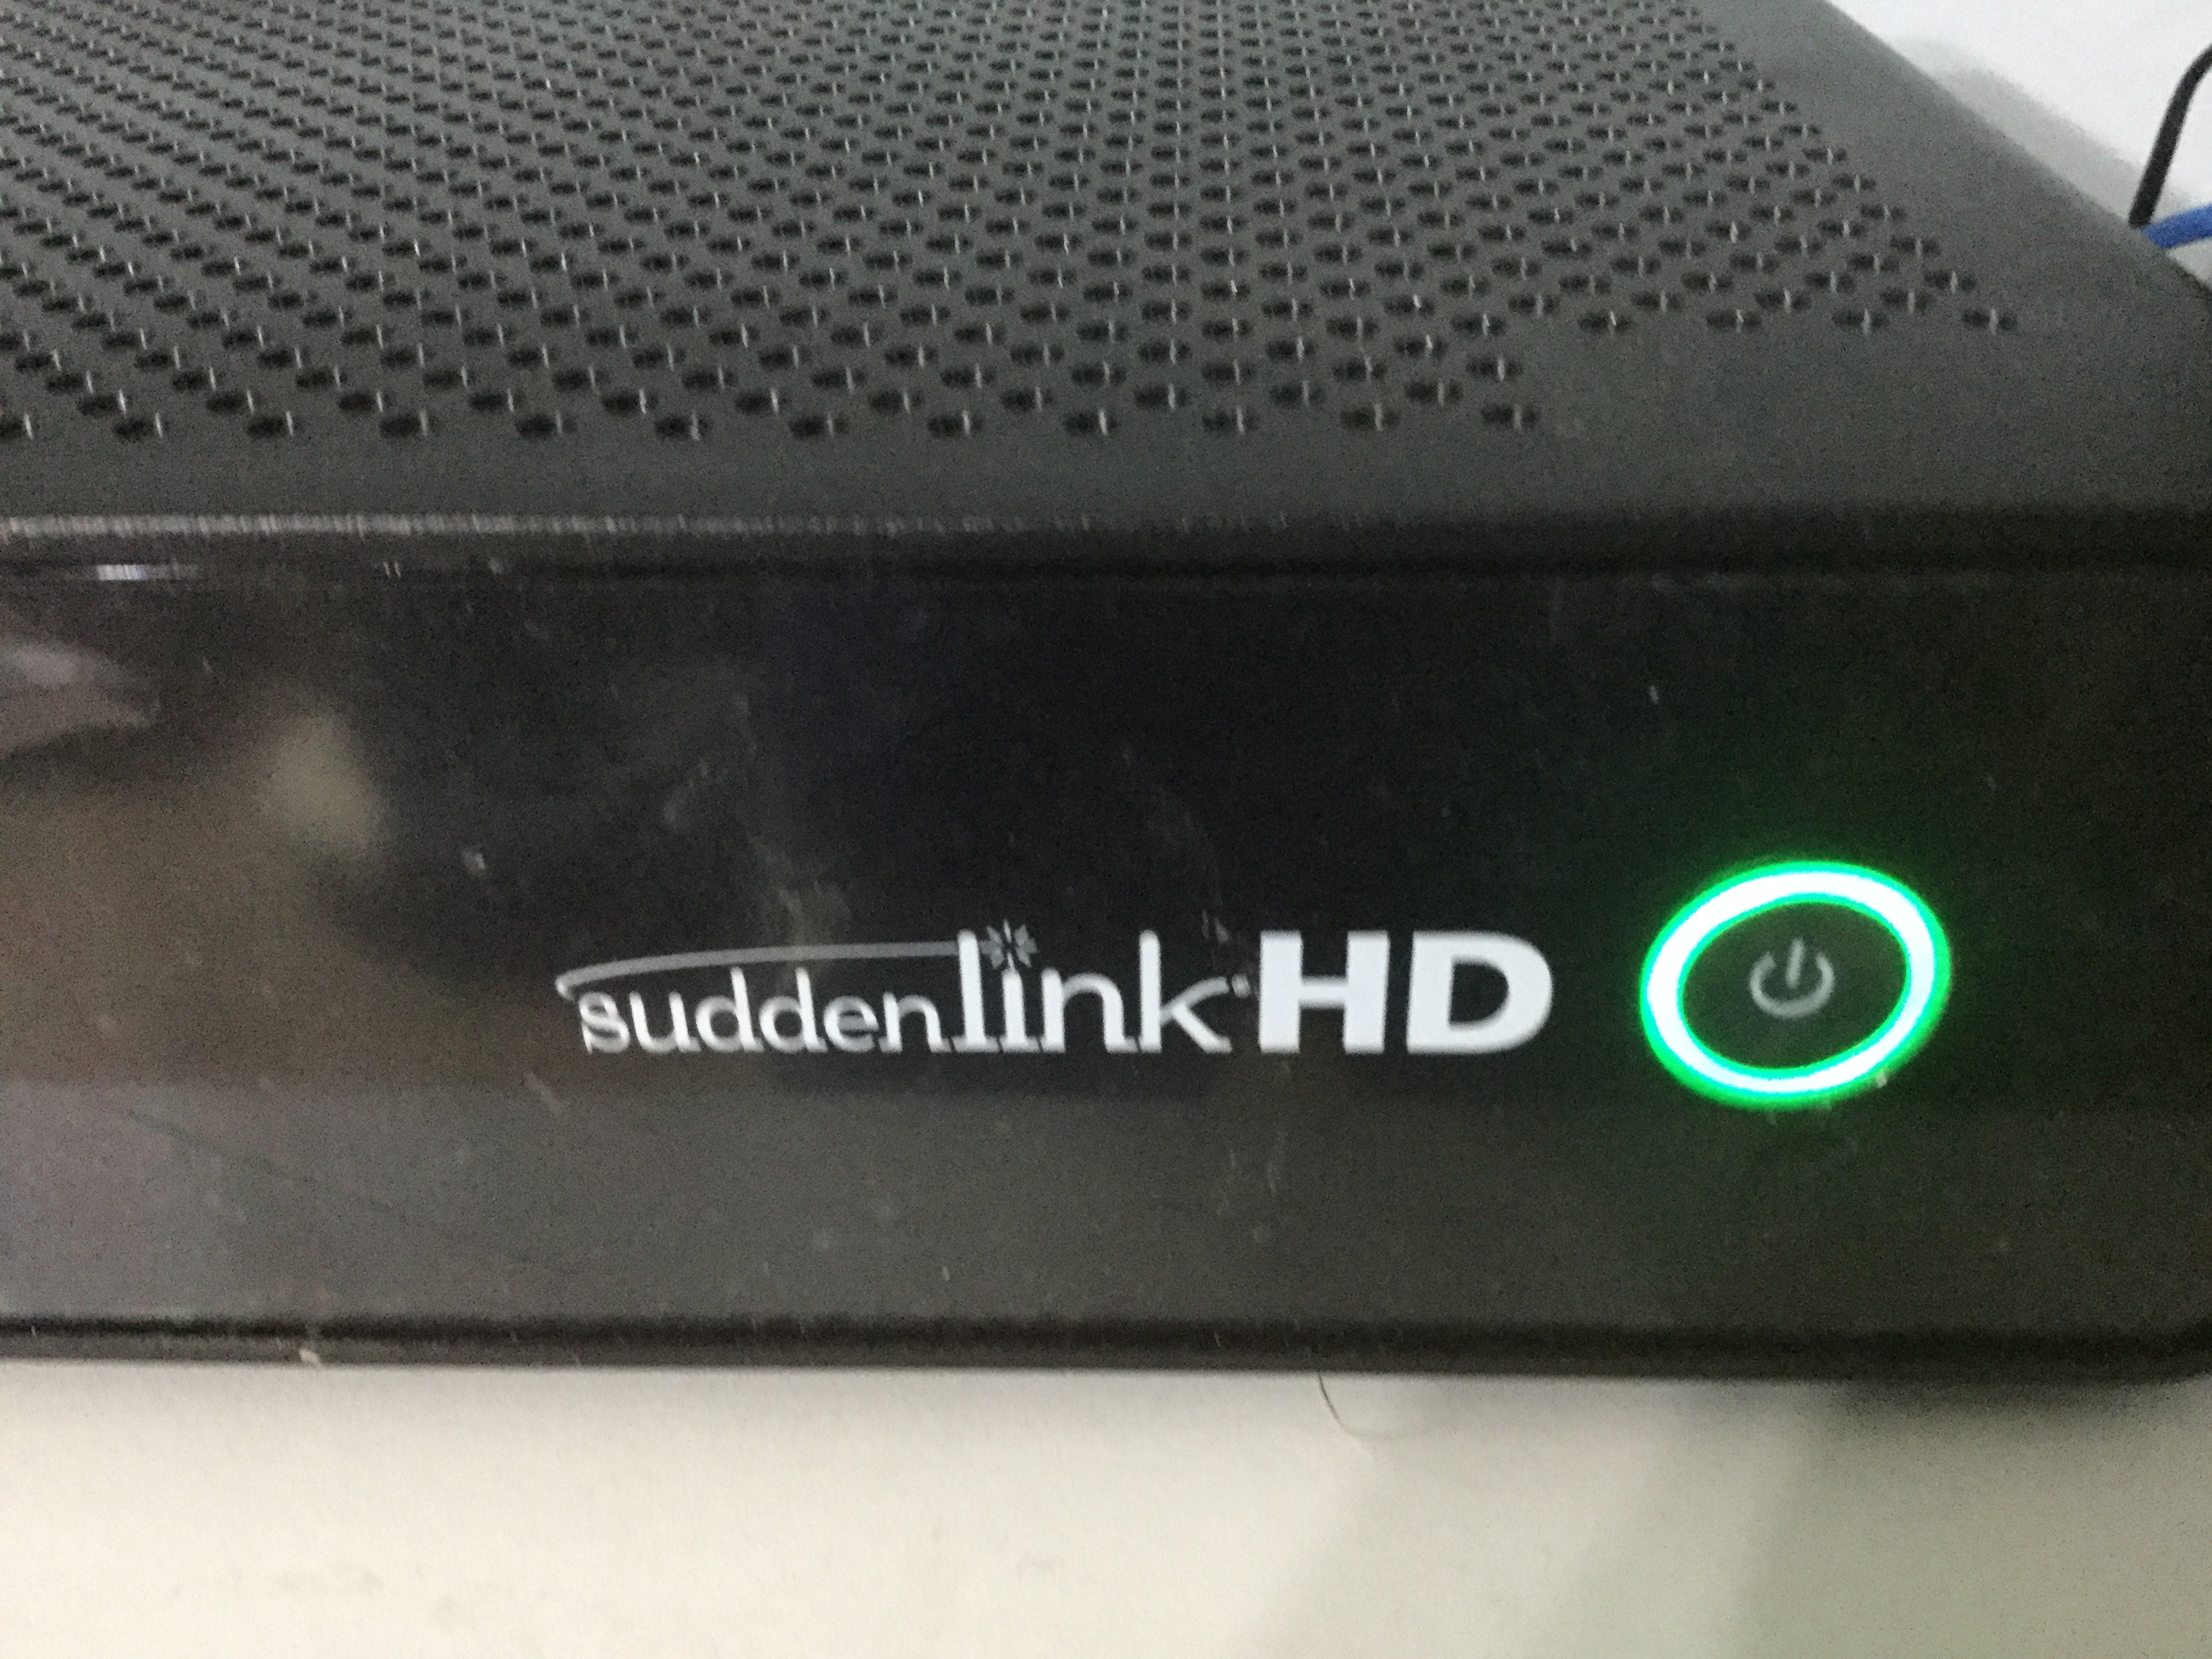 Suddenlink Change Password